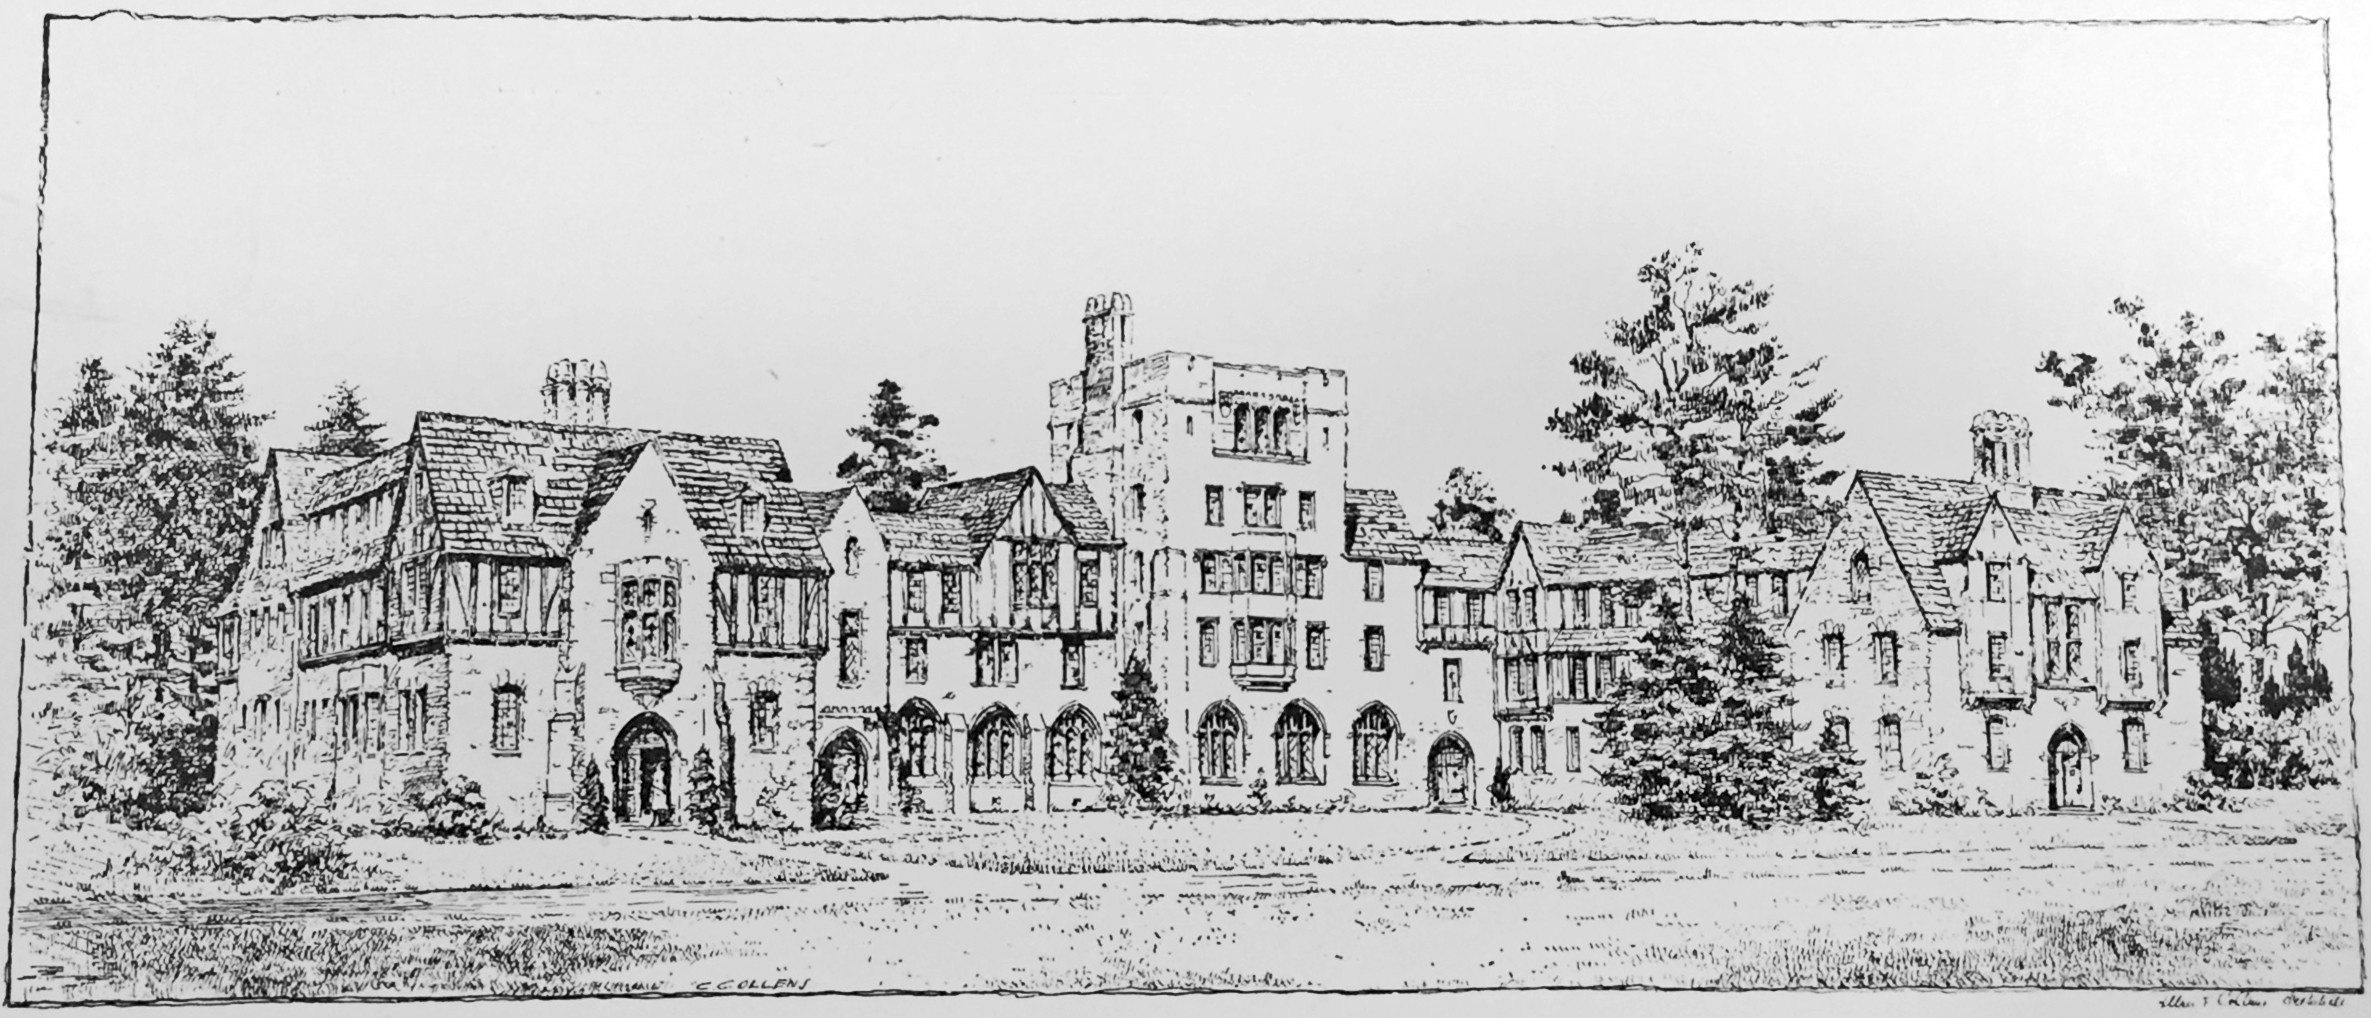 Charles Collens's sketch of the proposed hall in the English 16th century style